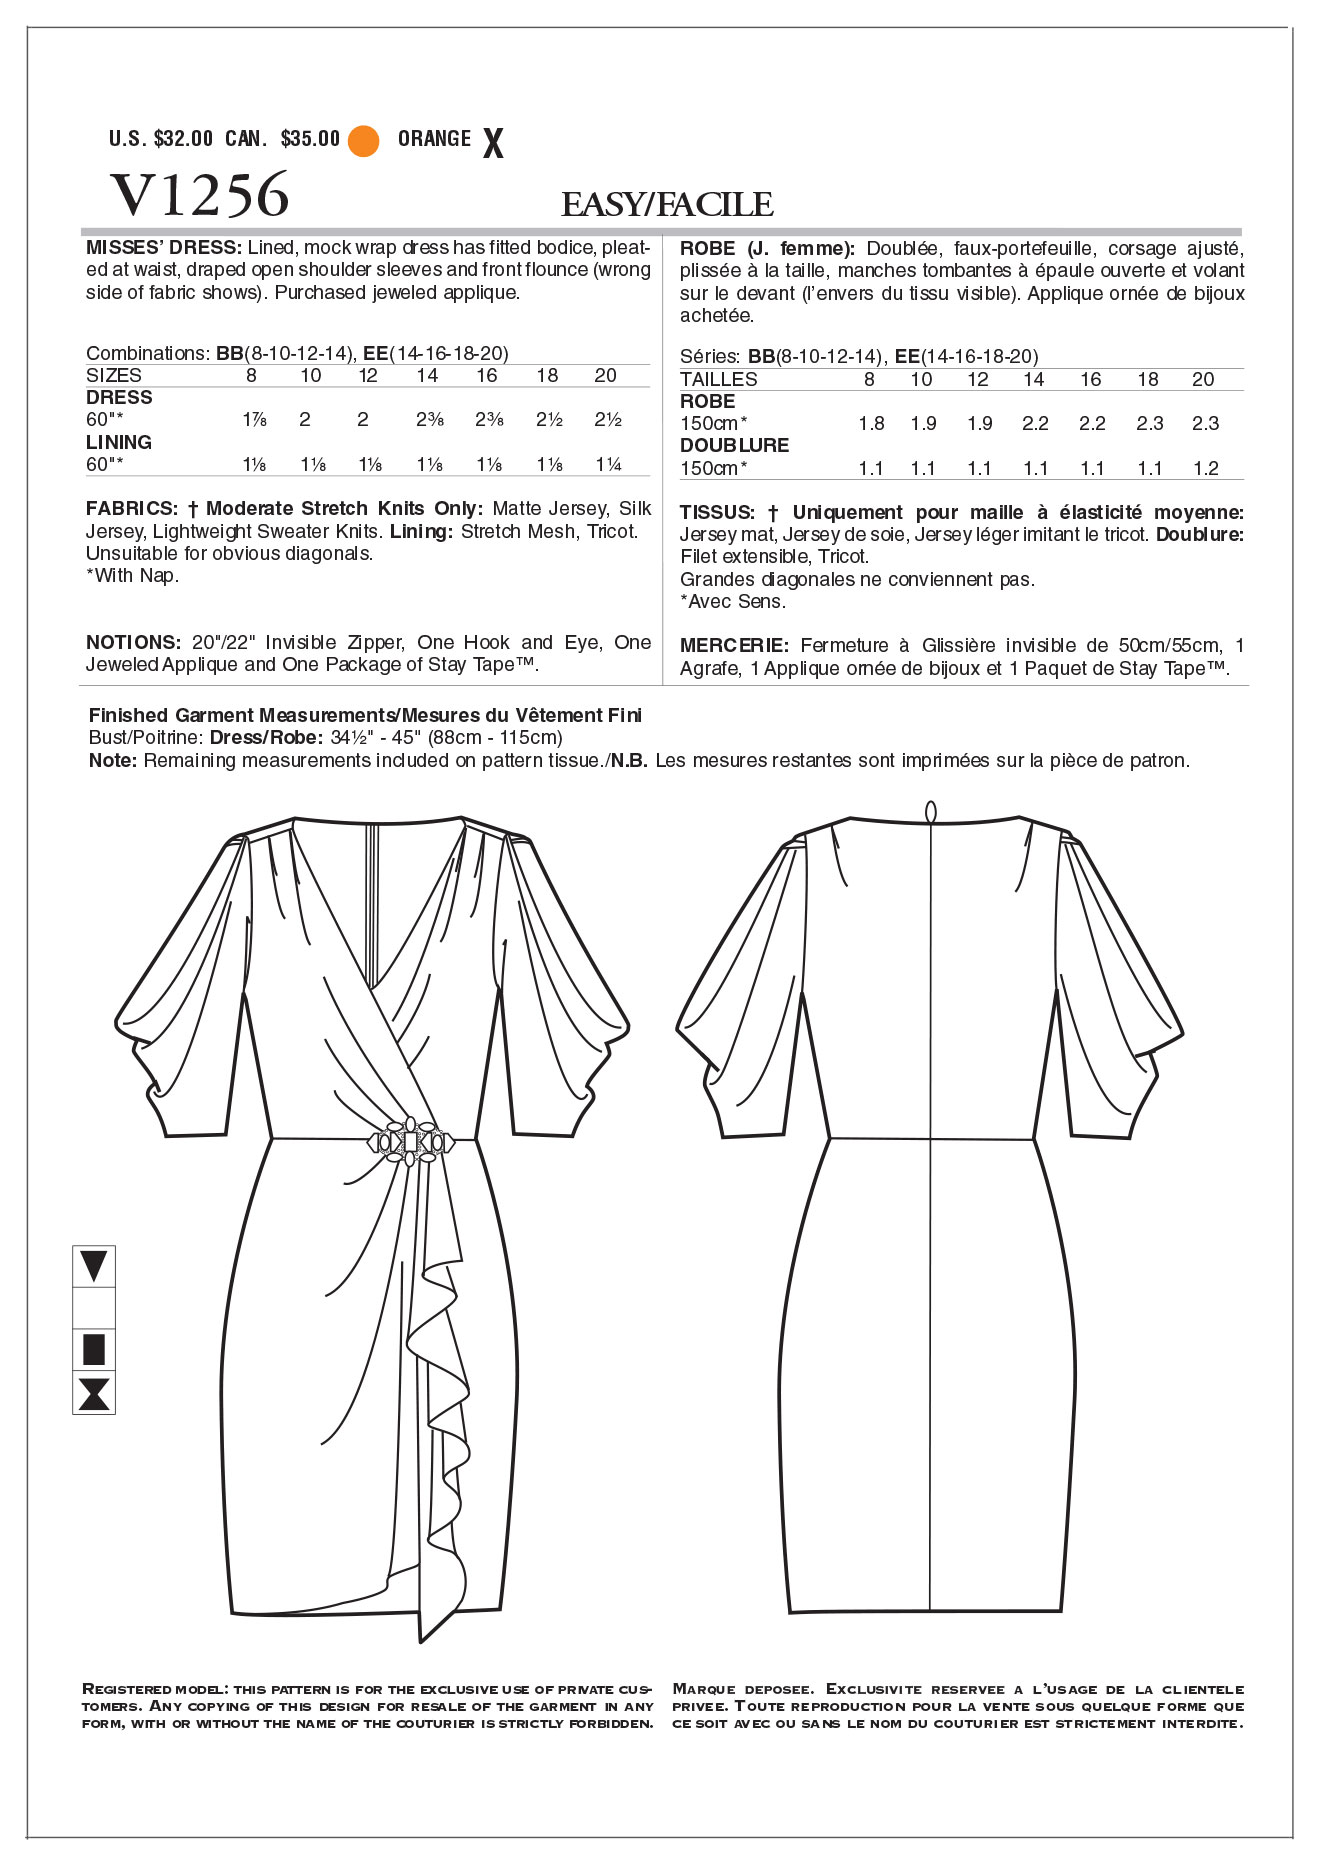 Mccall Pattern V1256 Ee (14-16--Vogue Pattern